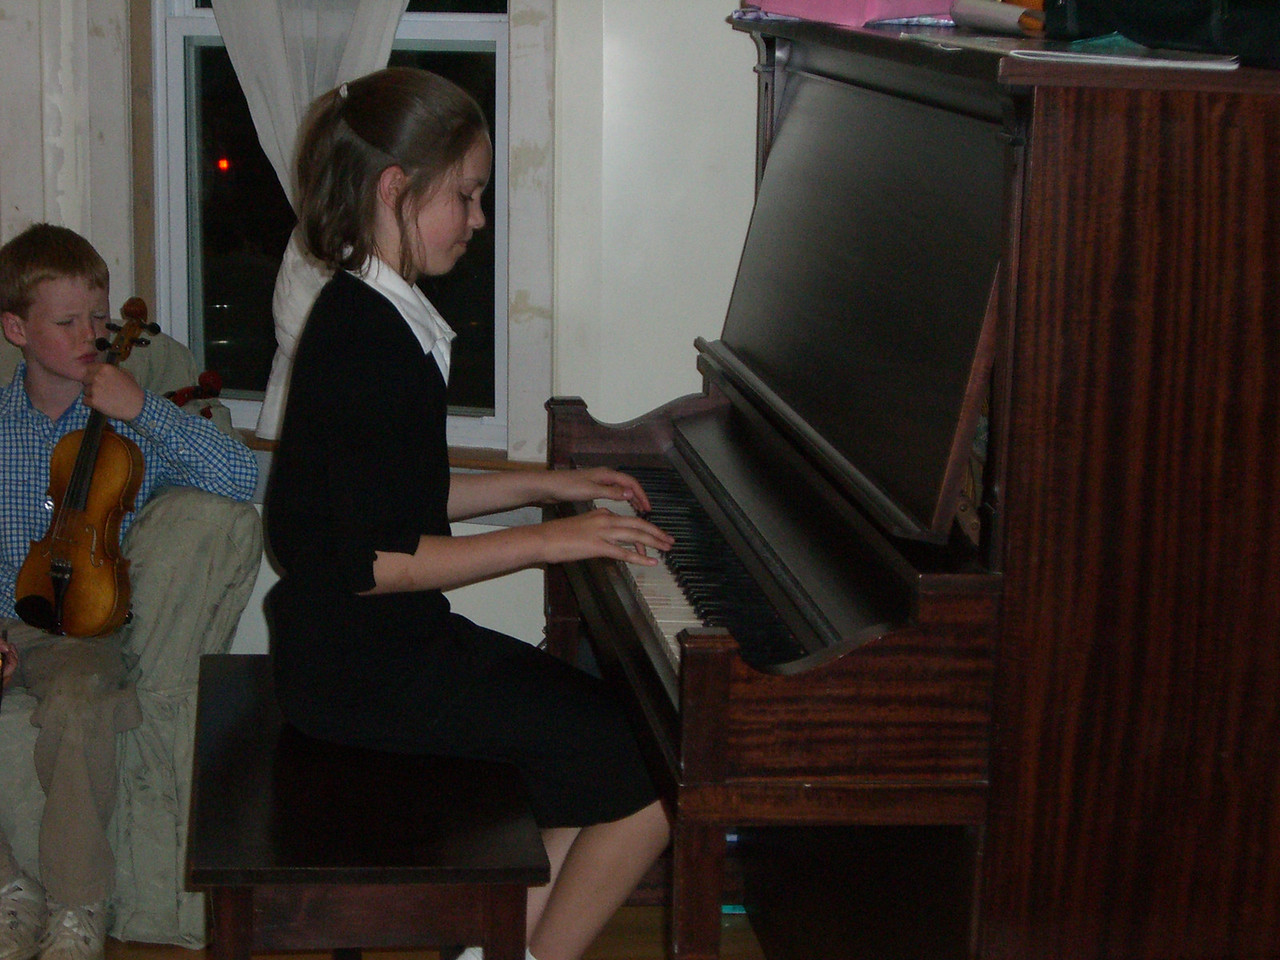 Sarah Tuma on piano